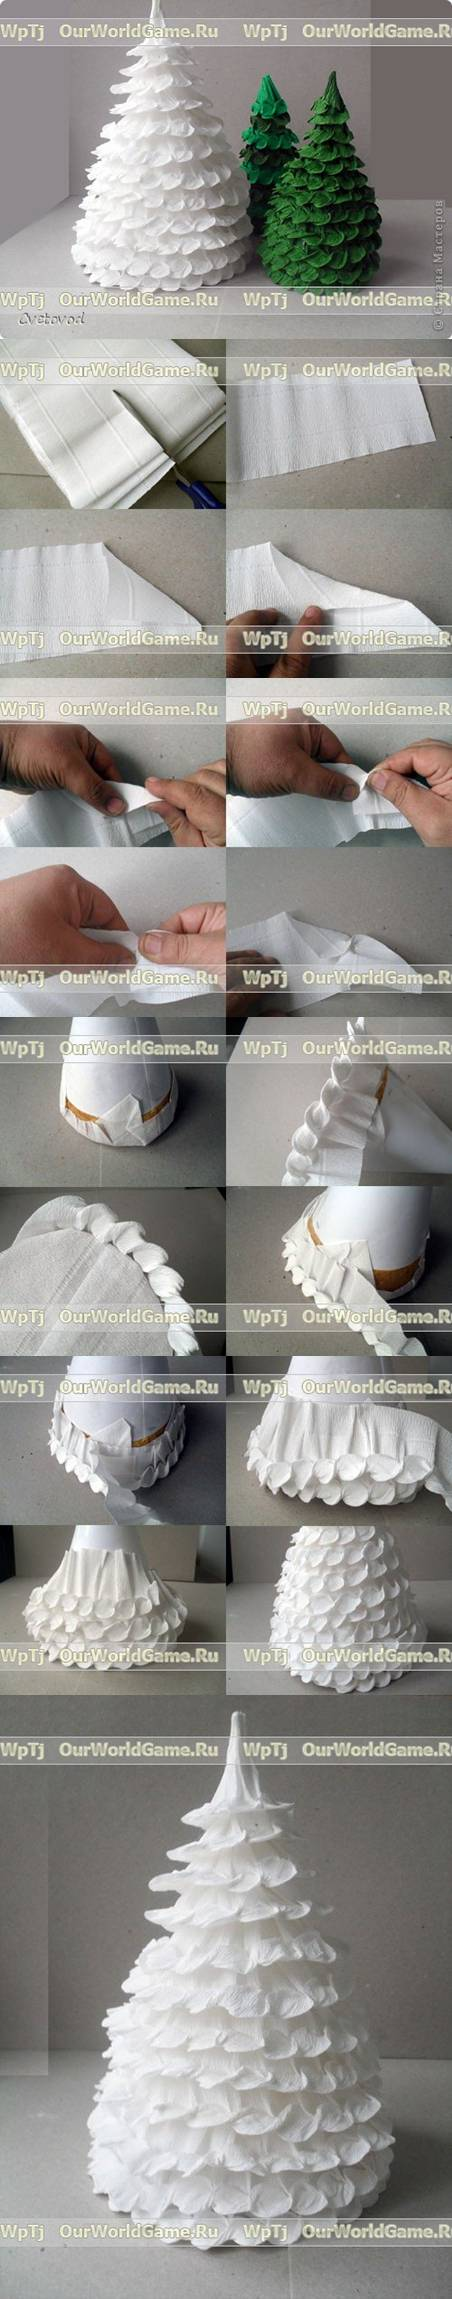 How to make Corrugated Paper Christmas Tree step by step DIY tutorial instructions